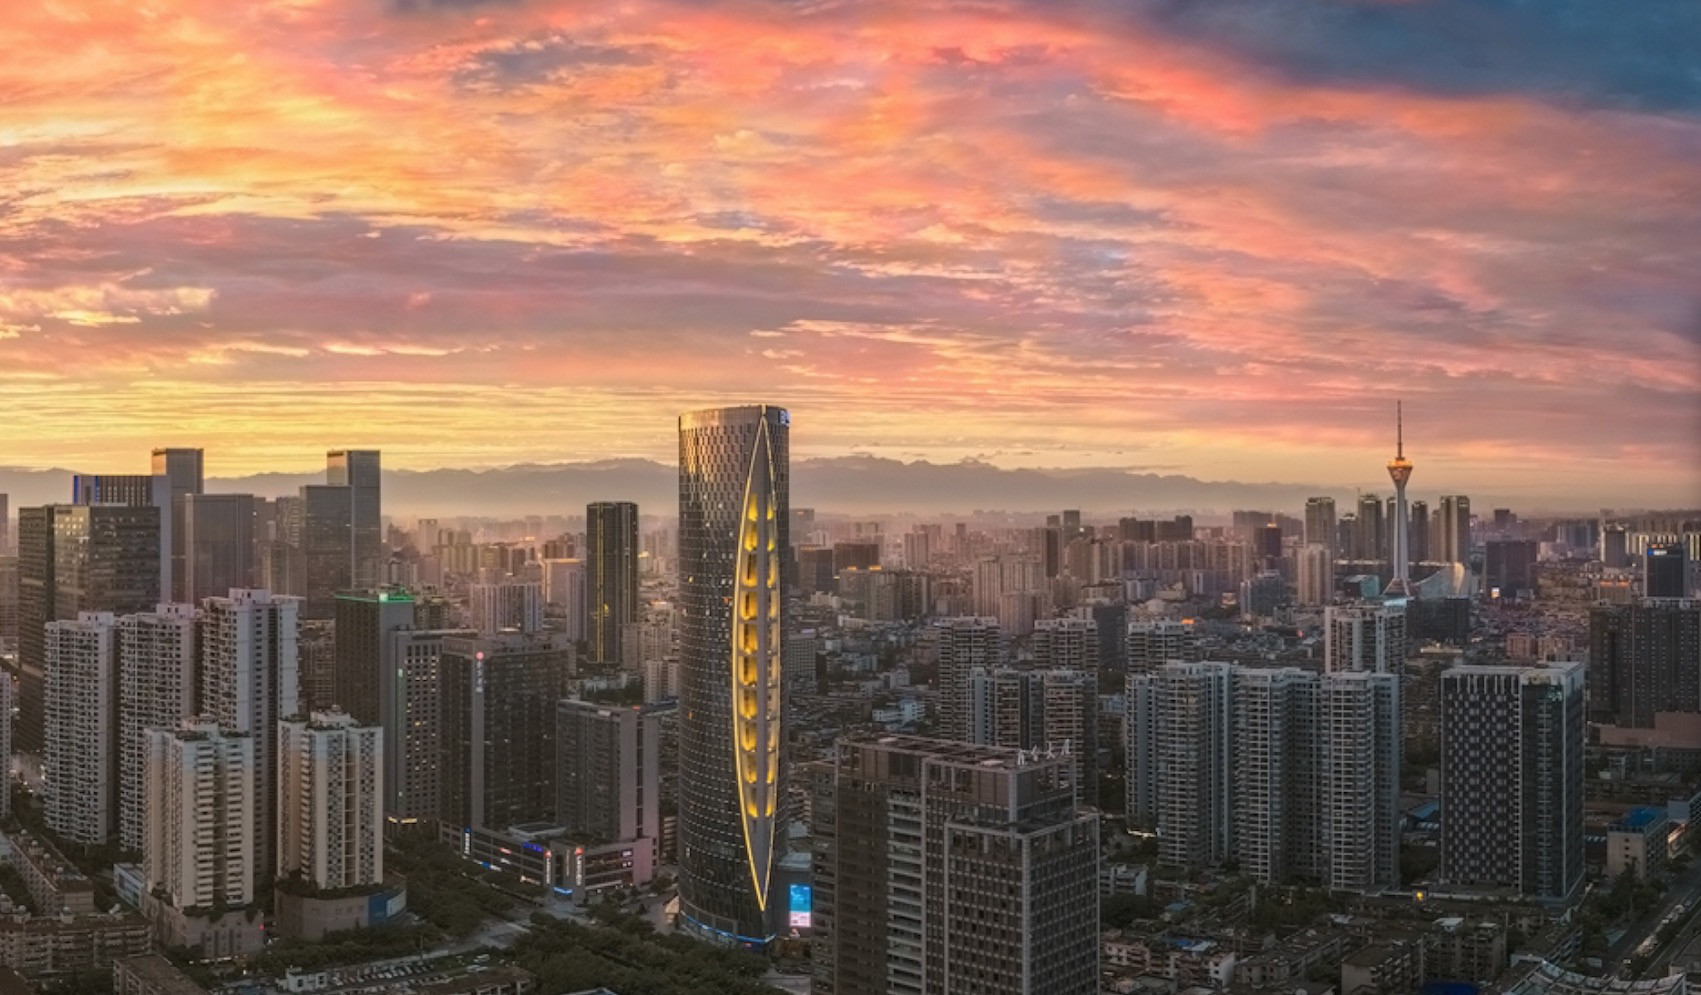 Chengdu 2021 head of delegations meeting scheduled for April